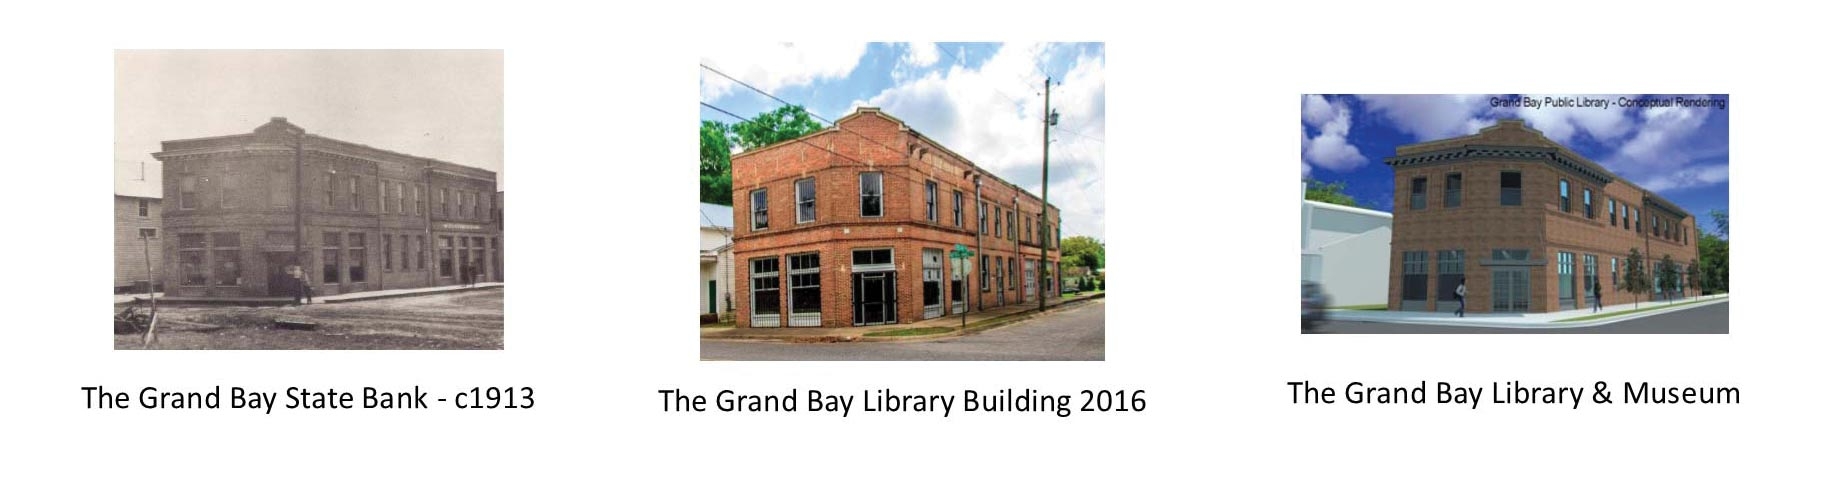 Grand Bay Library Receives $10,000 Grant